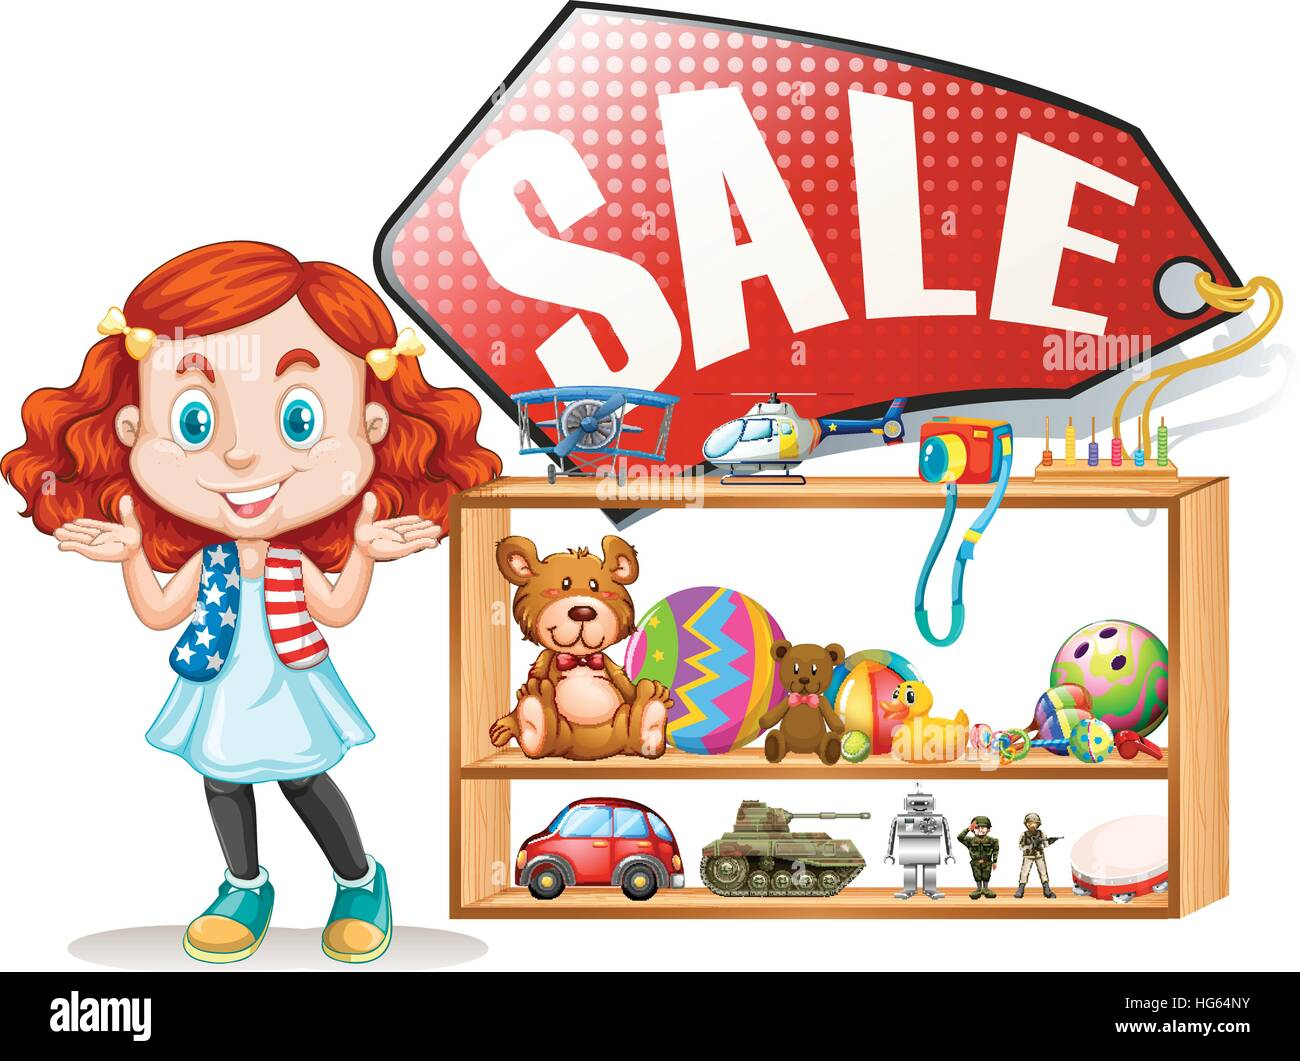 Girl saling old toys illustration - Stock Vector